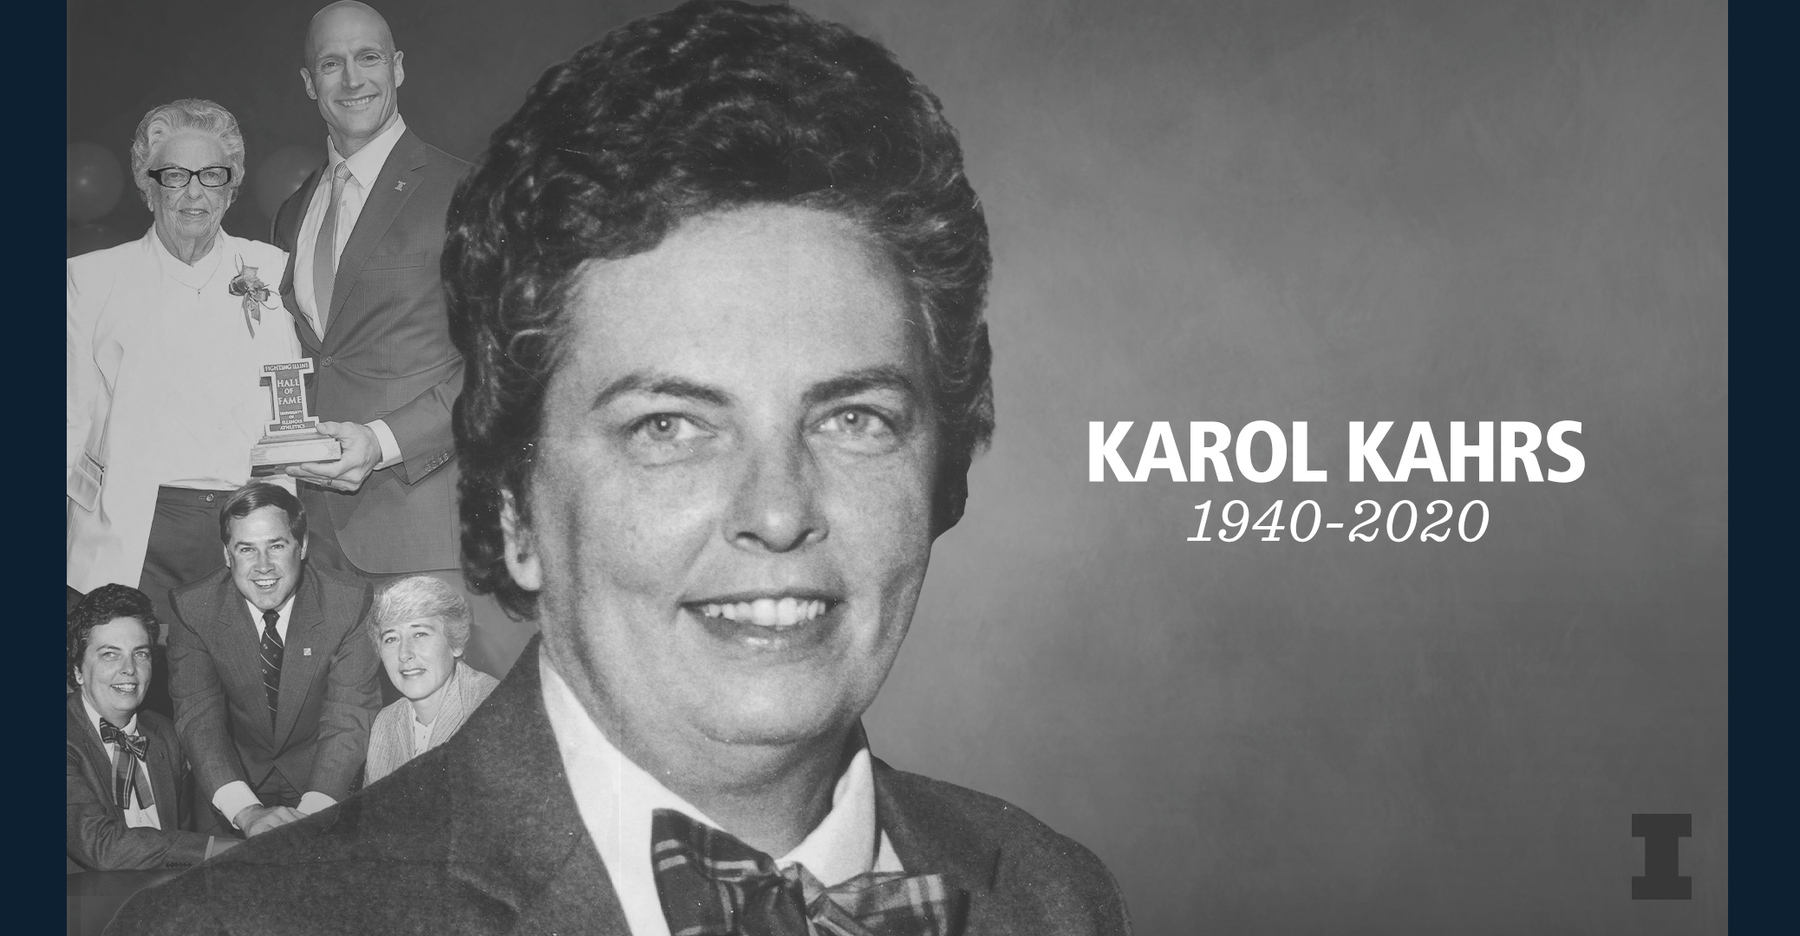 graphic: Karol Kahrs, 1940 - 2020